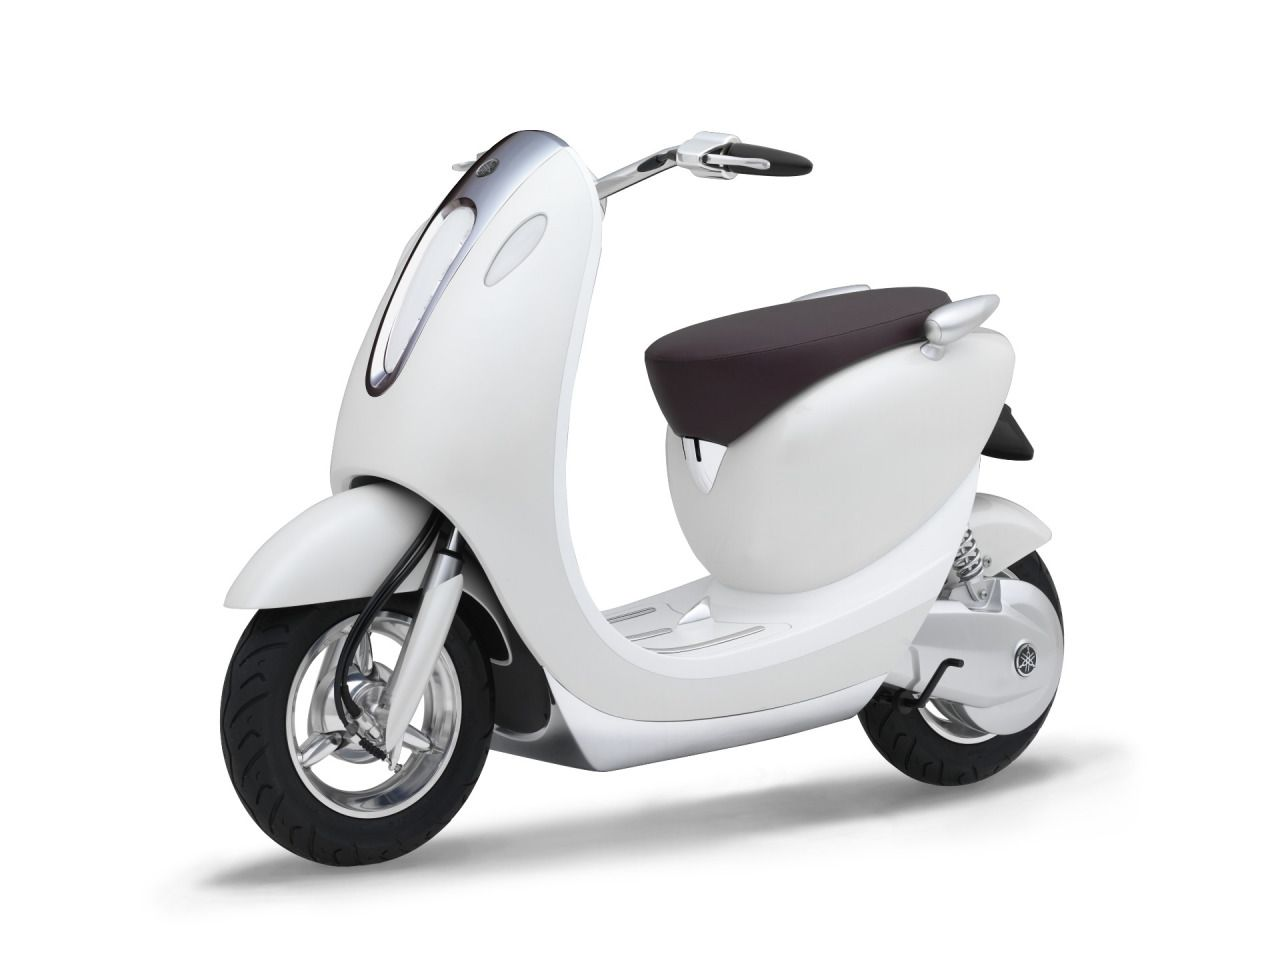 industrial design reference yoadriang yamaha c3 scooter products details pinterest. Black Bedroom Furniture Sets. Home Design Ideas